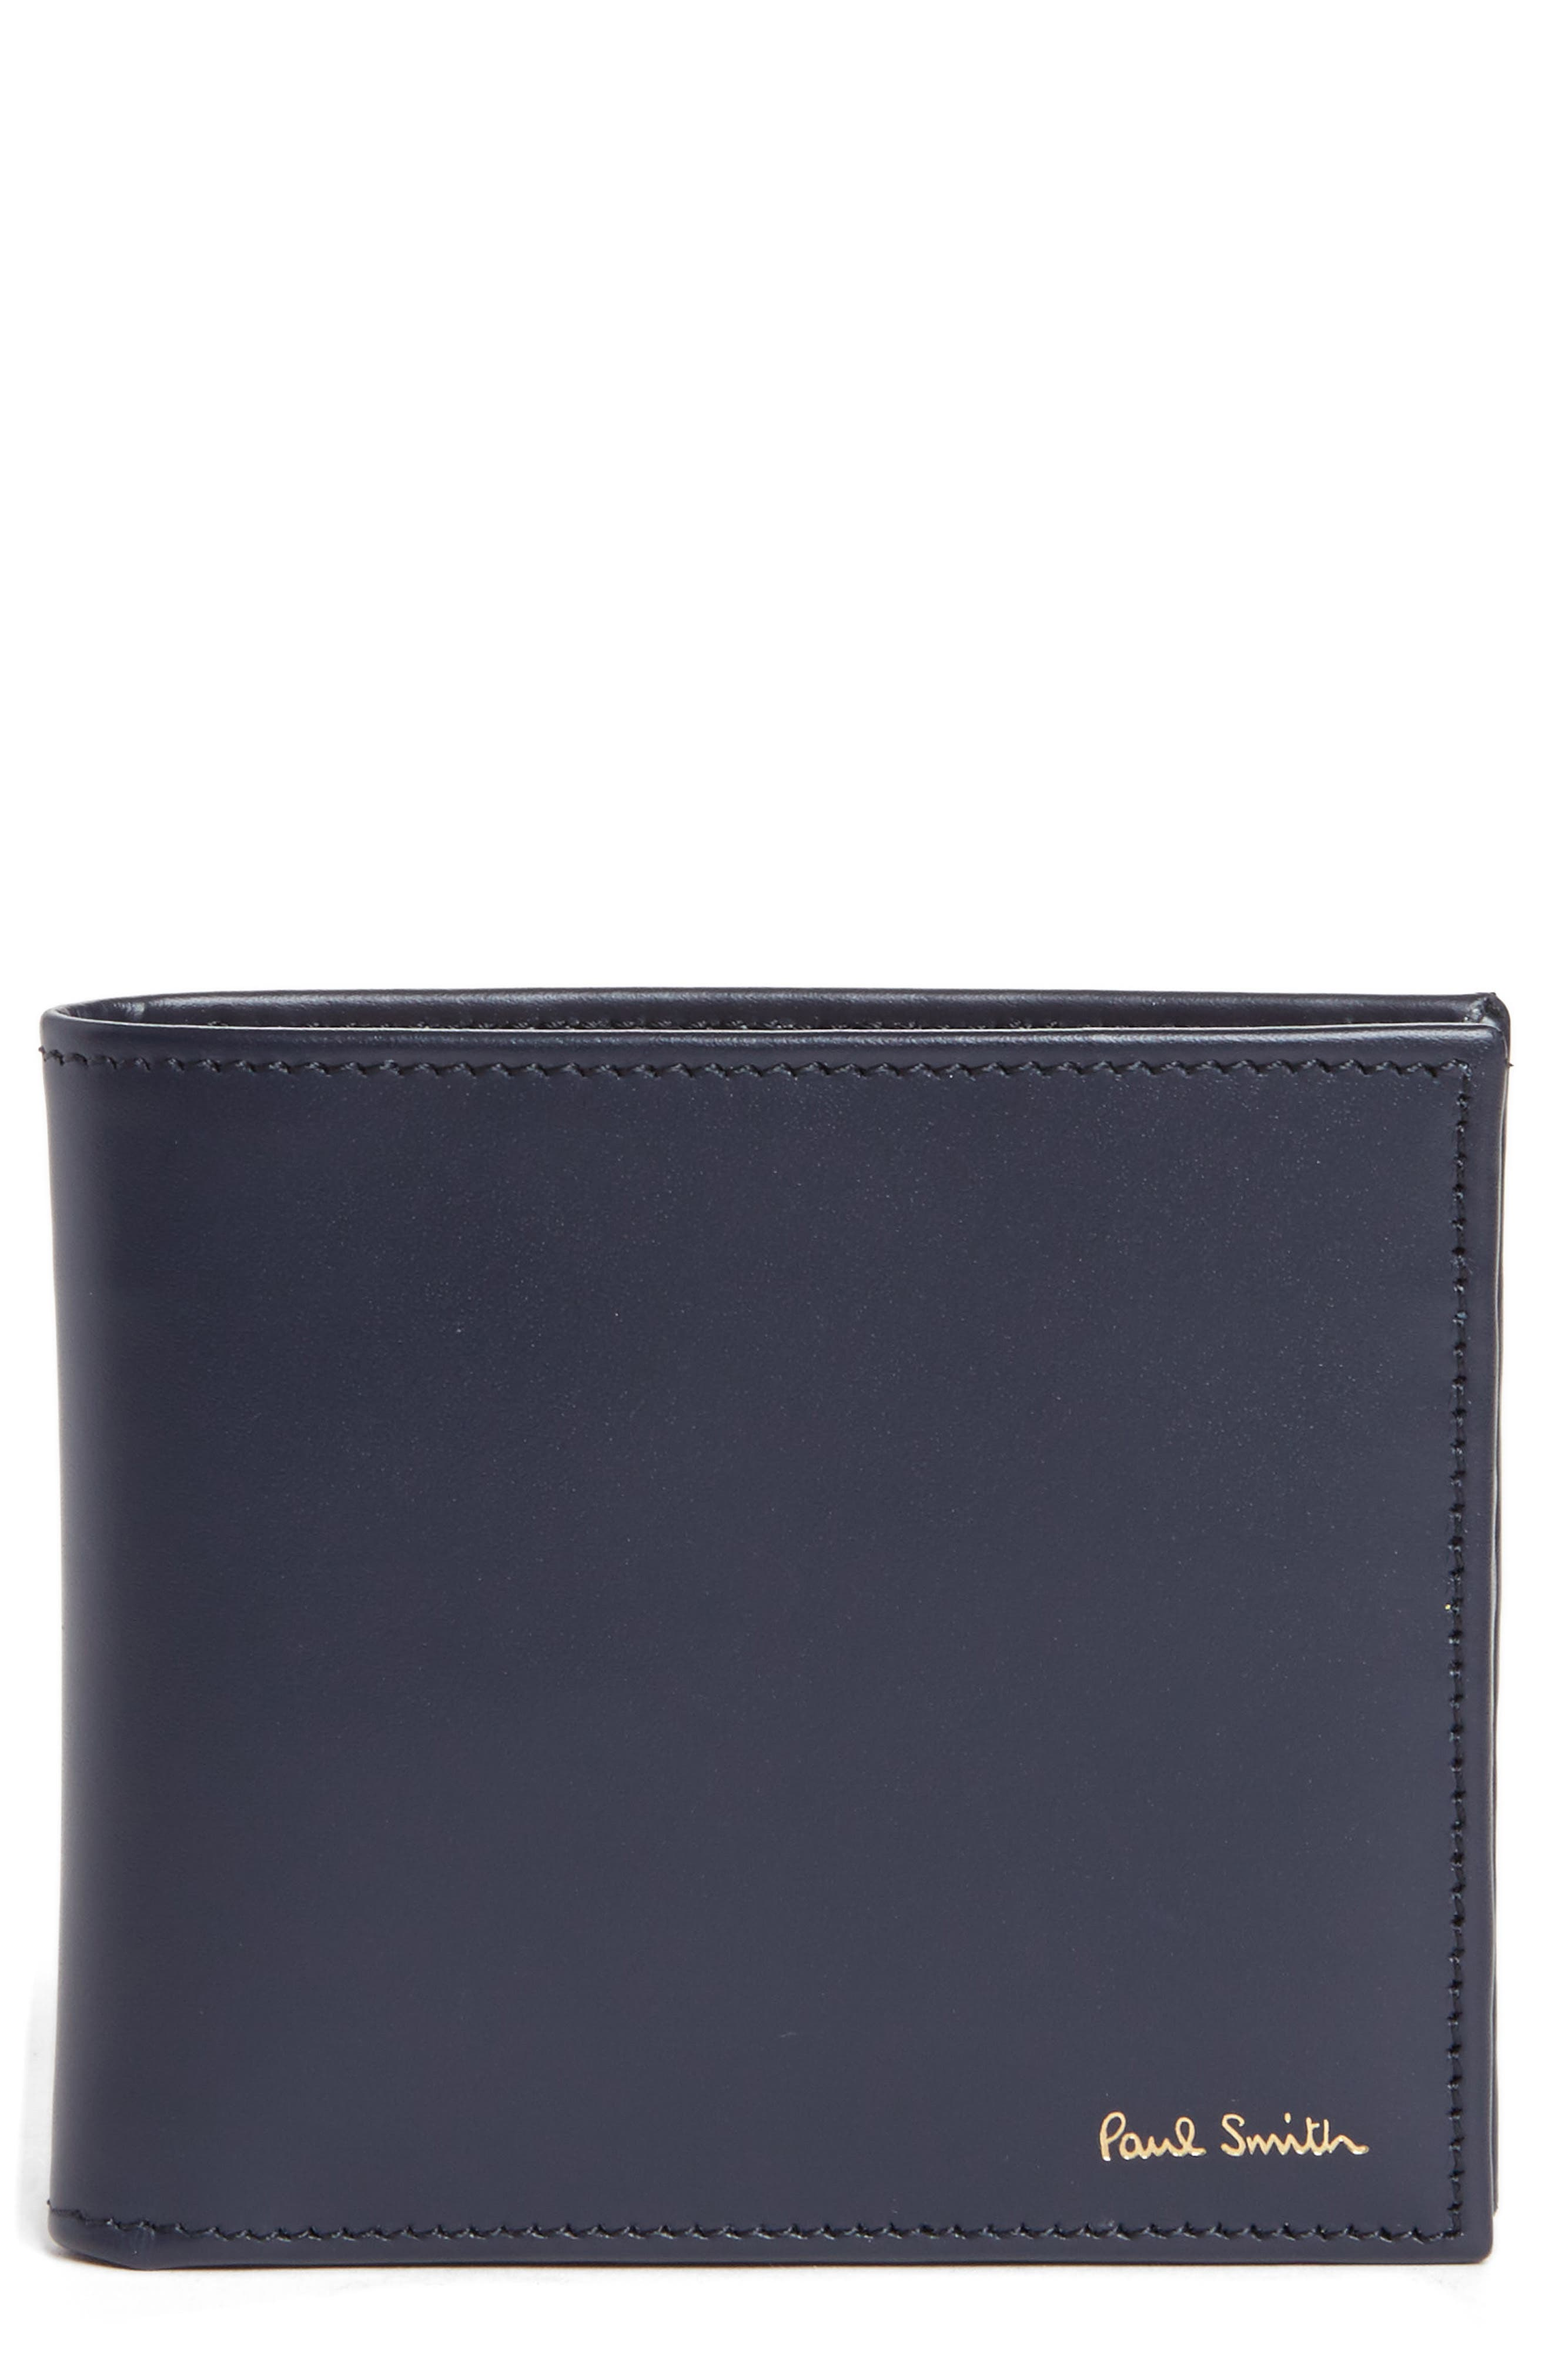 Alternate Image 1 Selected - Paul Smith Multistripe Leather Wallet